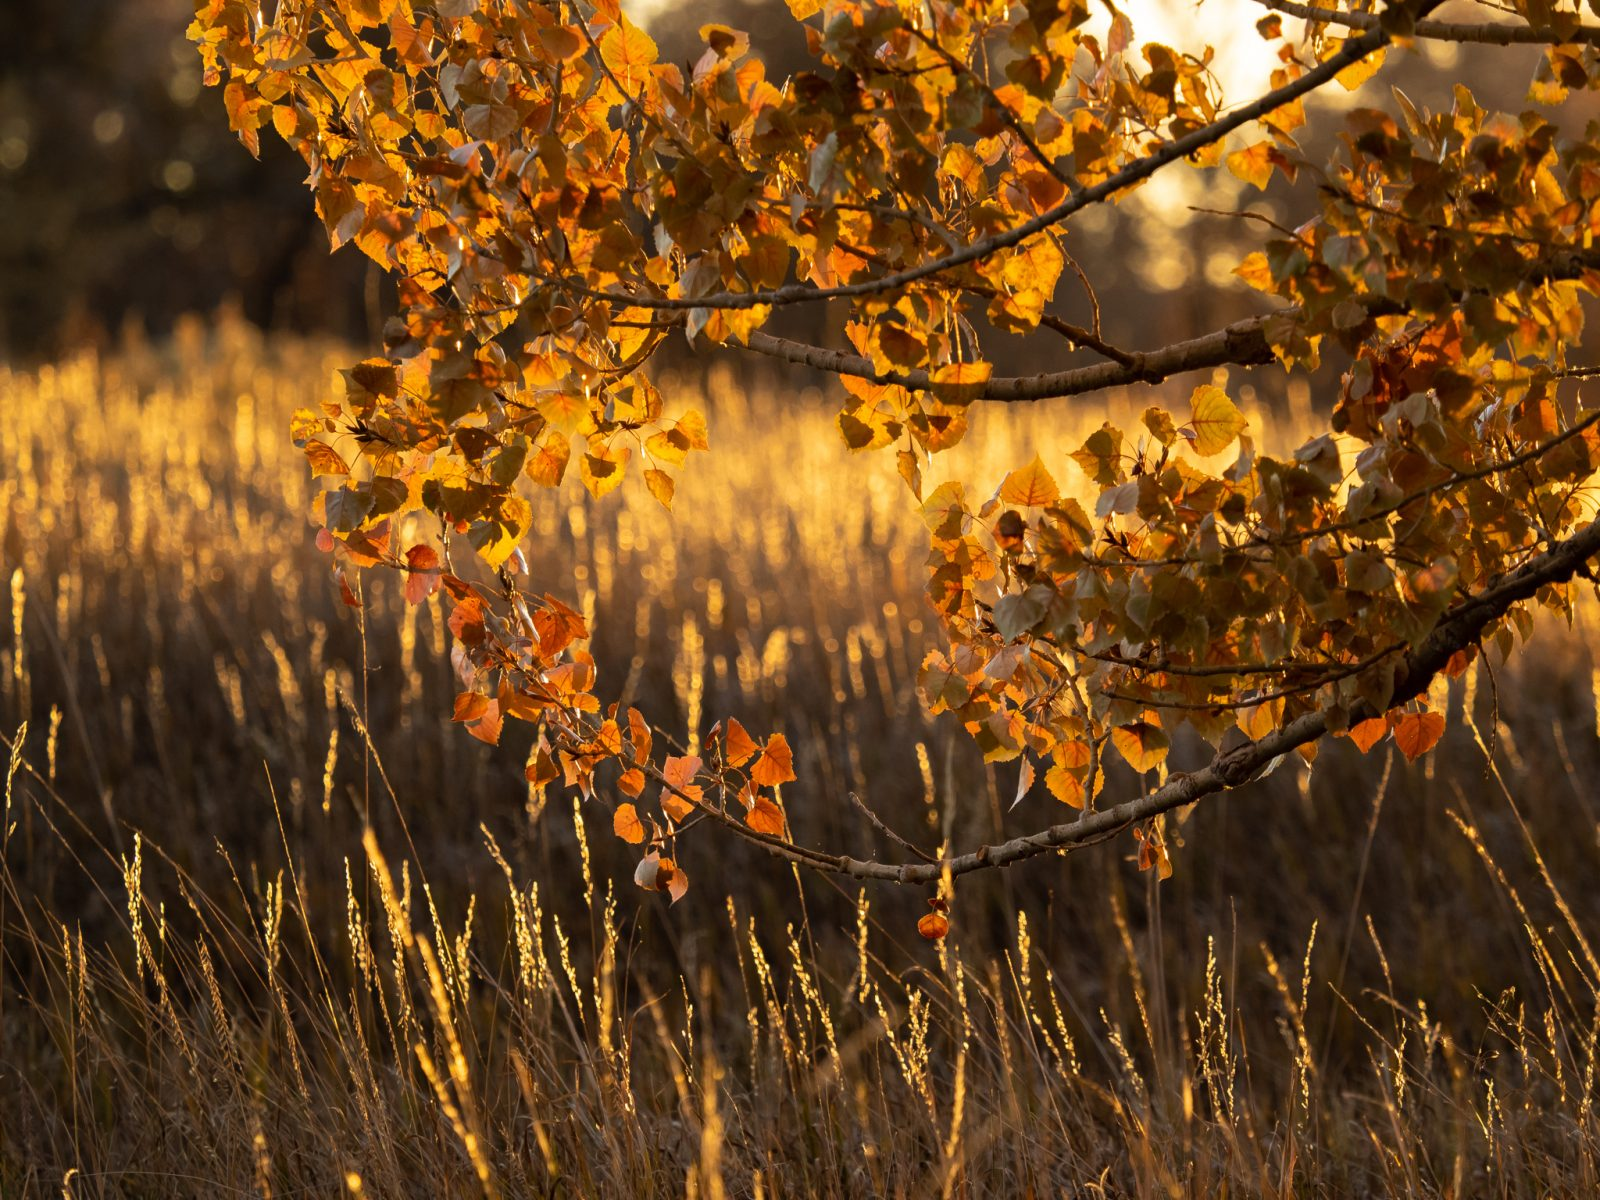 Autumn Grasses and Leaves